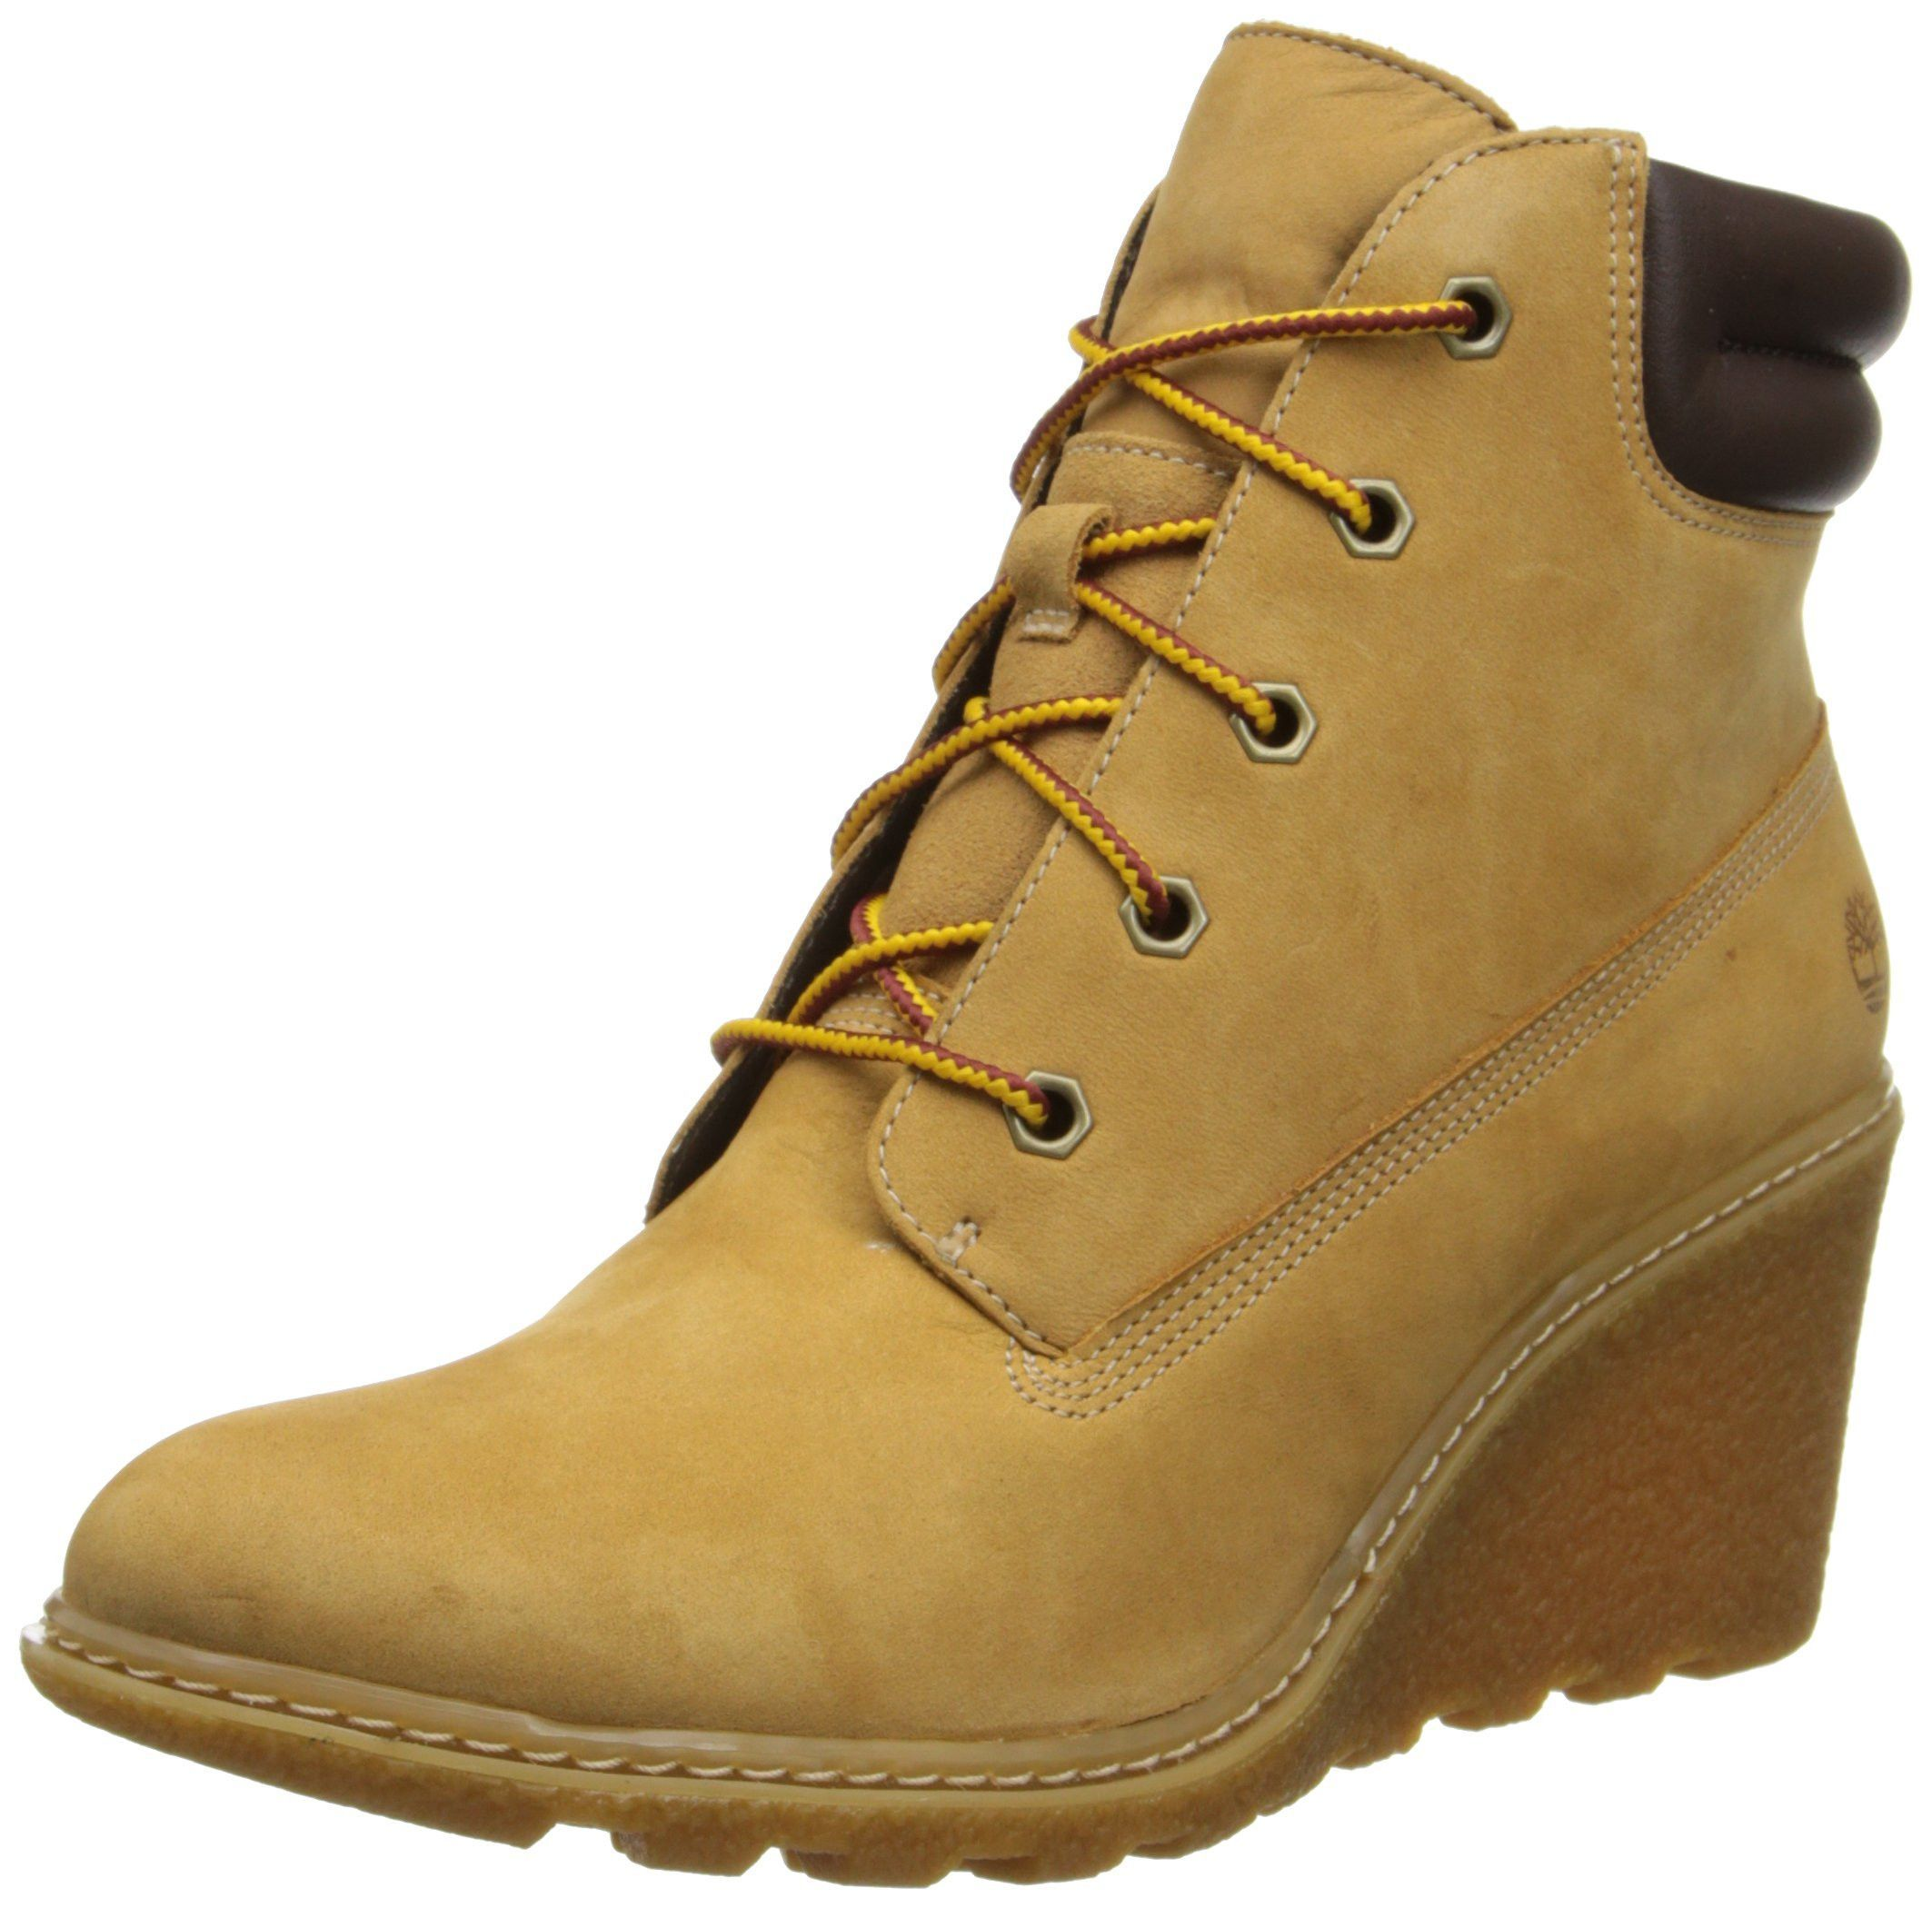 d3d9120b350aa TB08251A231 - Ek Amston 6 Inch | Shoes | Timberland boots women ...